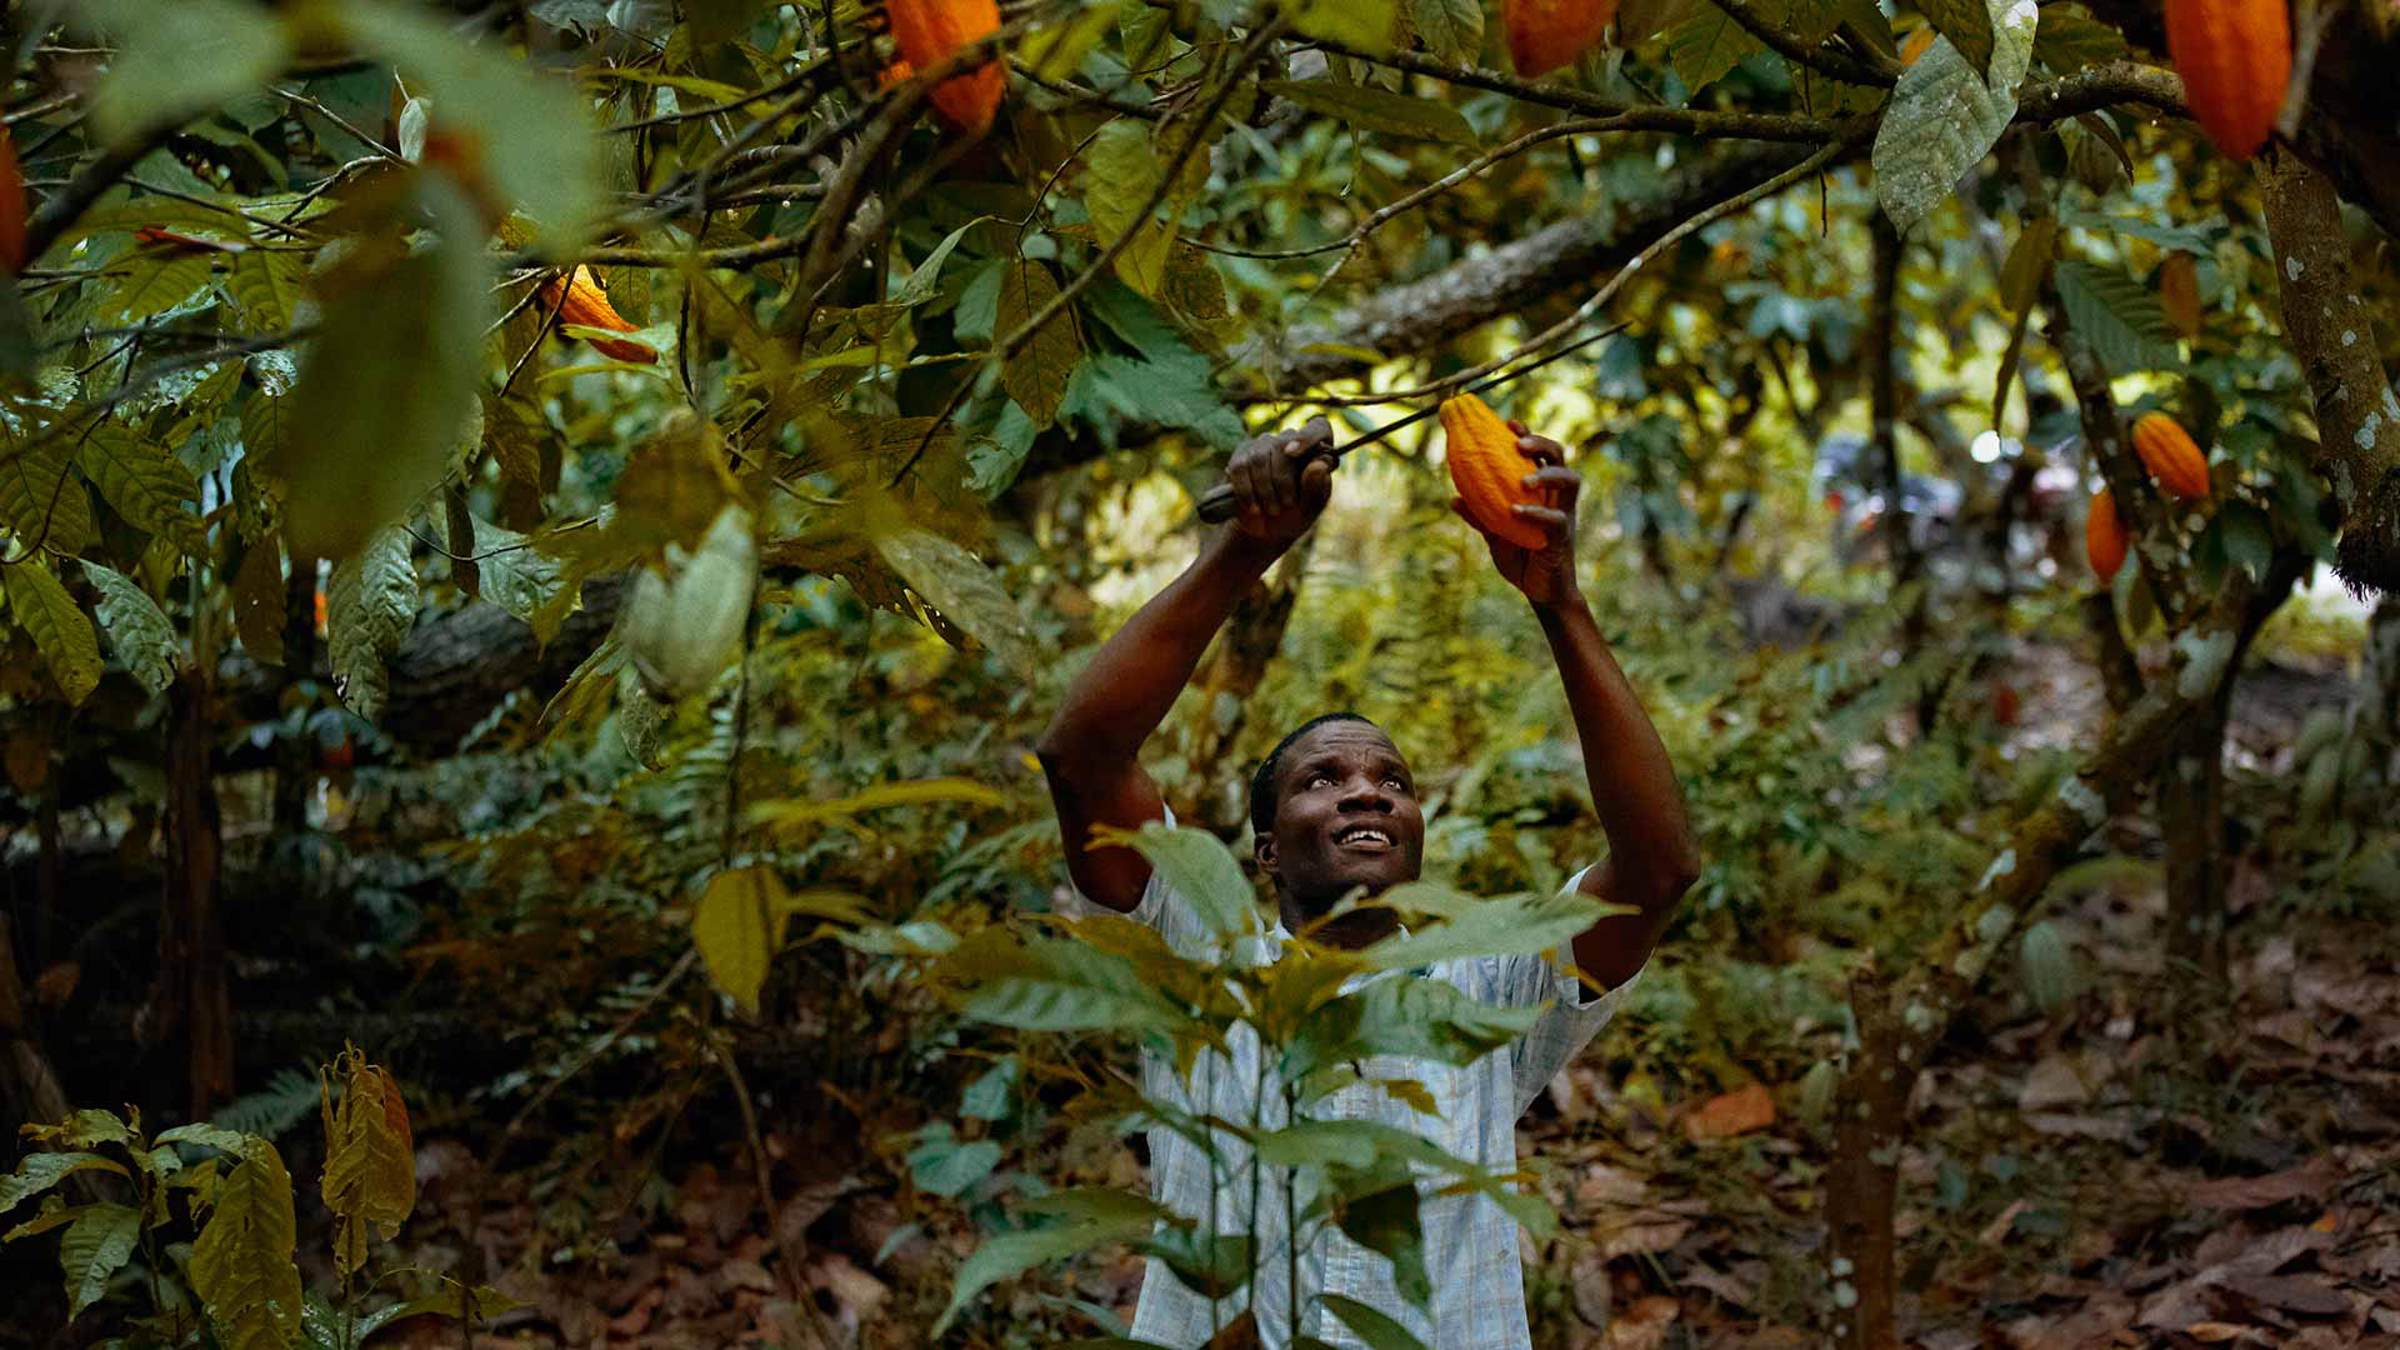 A man cutting down a cocoa pod from a tree